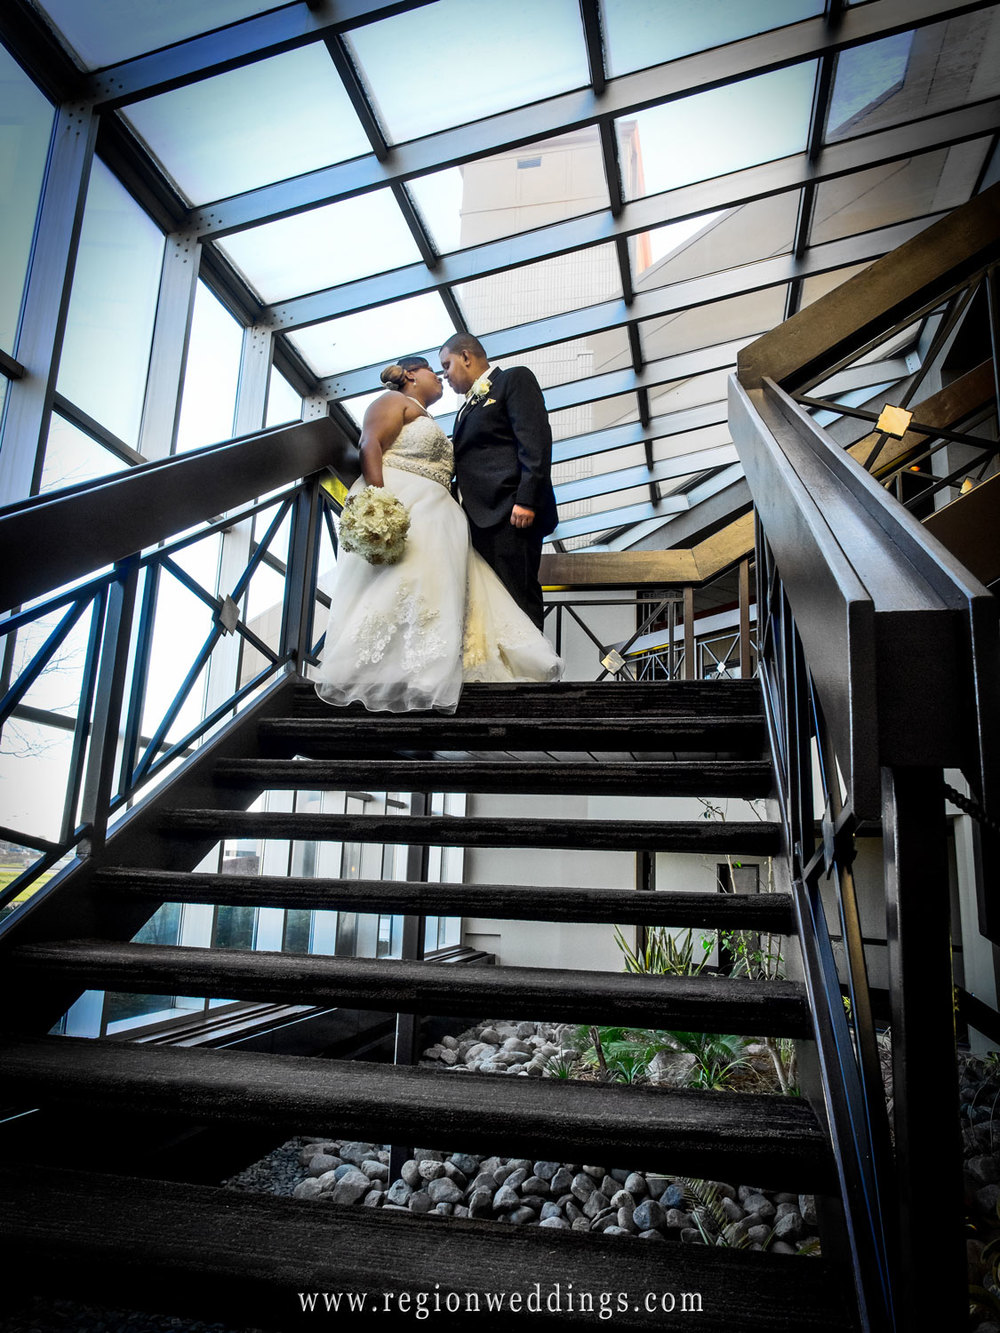 Bride and Groom on the staircase at Radisson at Star Plaza Theater.